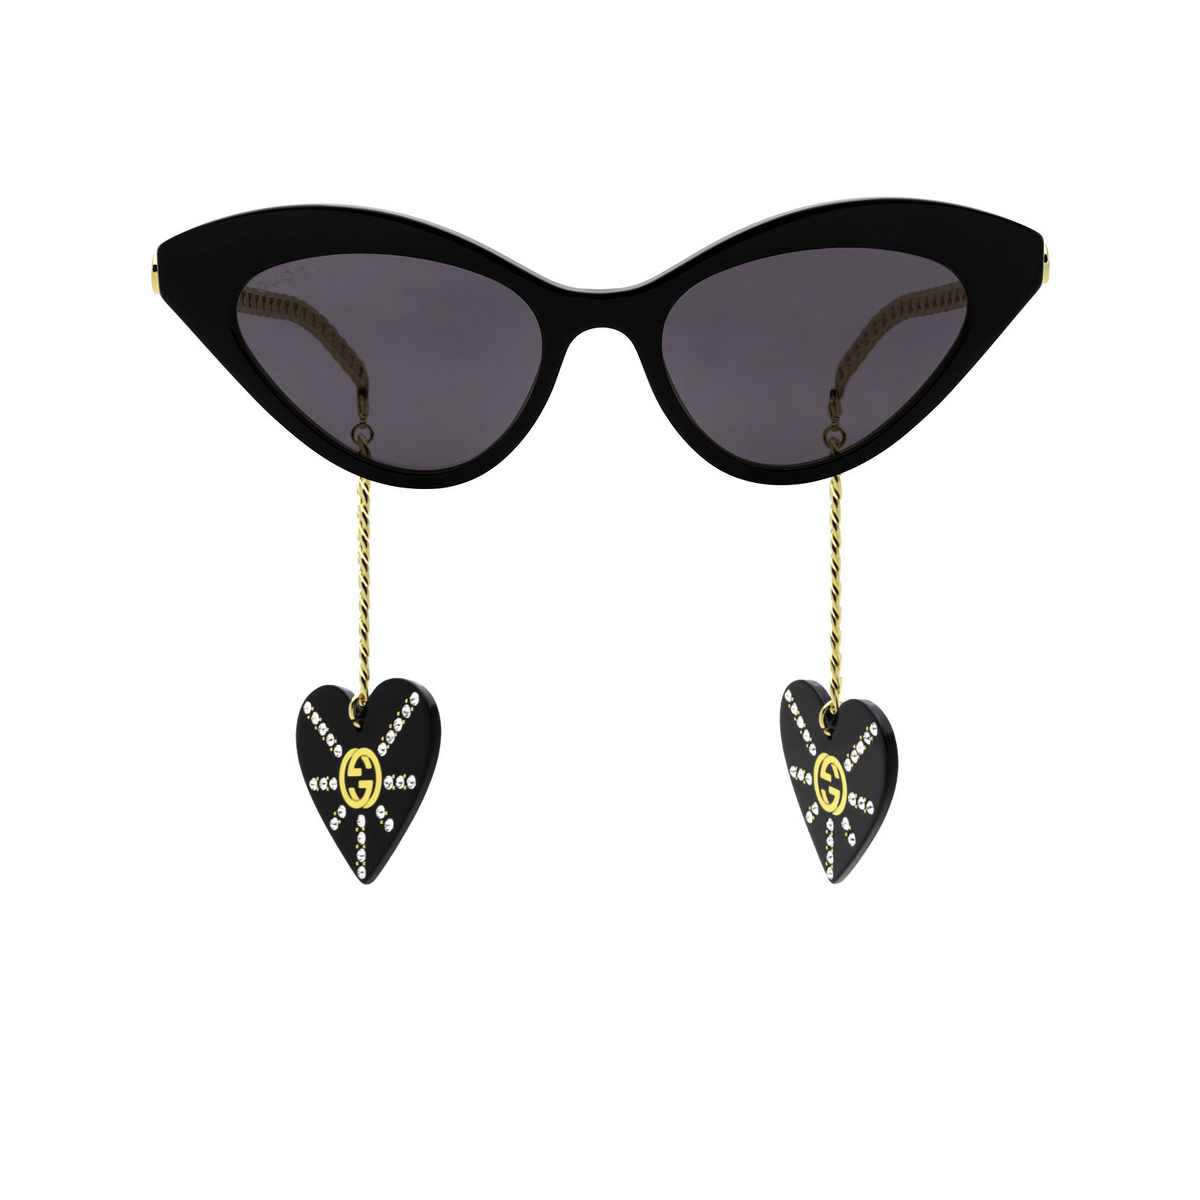 Gucci® Cat-eye Sunglasses: GG0978S color Black 004 - front view.